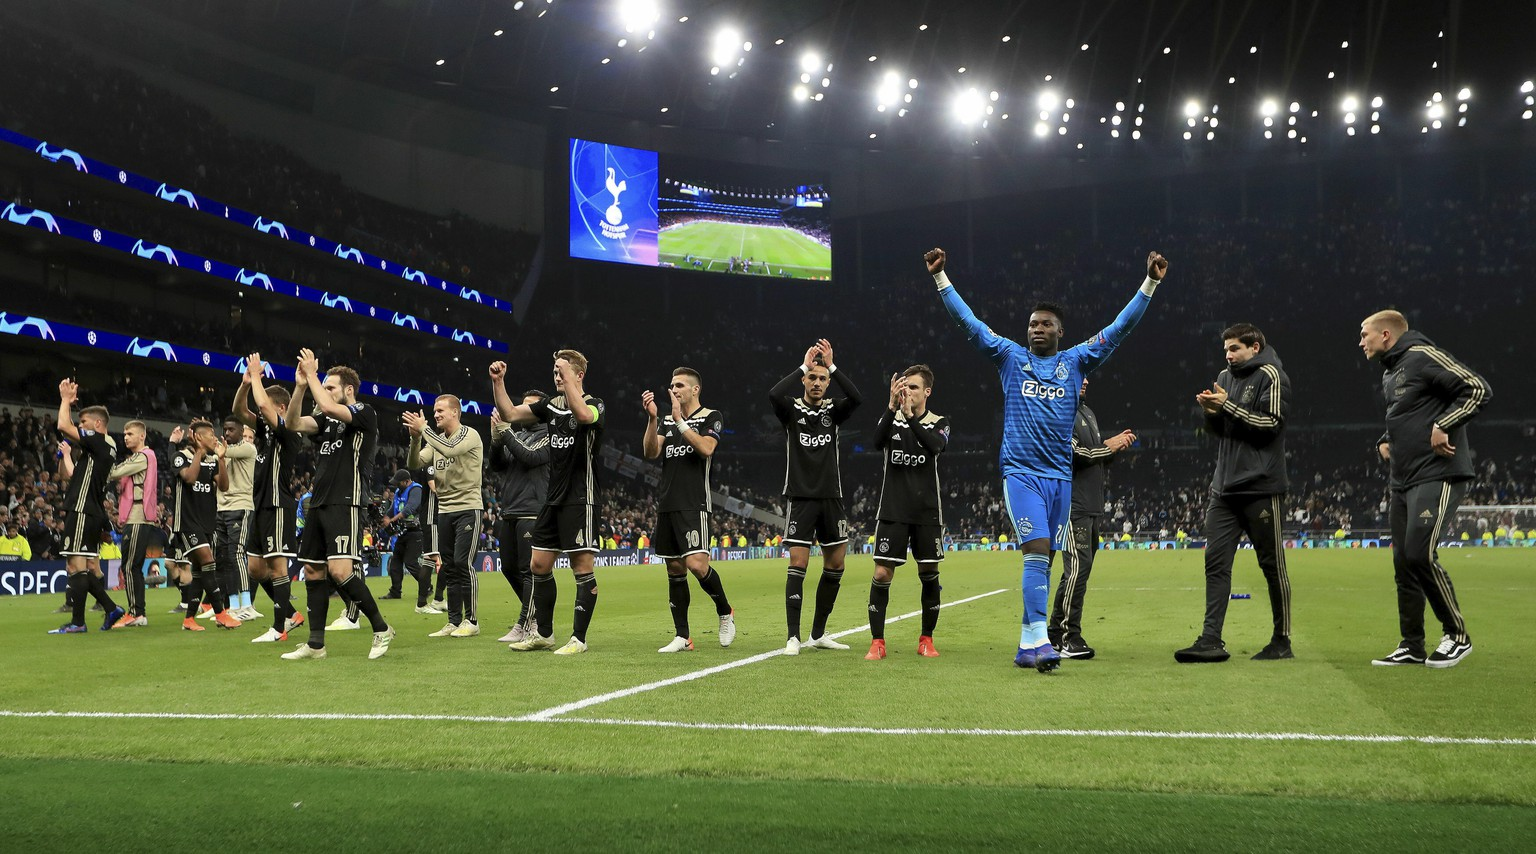 Ajax players celebrate after the final whistle of the Champions League, semifinal first leg soccer match at the Tottenham Hotspur Stadium, London, Tuesday April 30, 2019. Ajax beat Tottenham 1-0. (Mike Egerton/PA via AP)